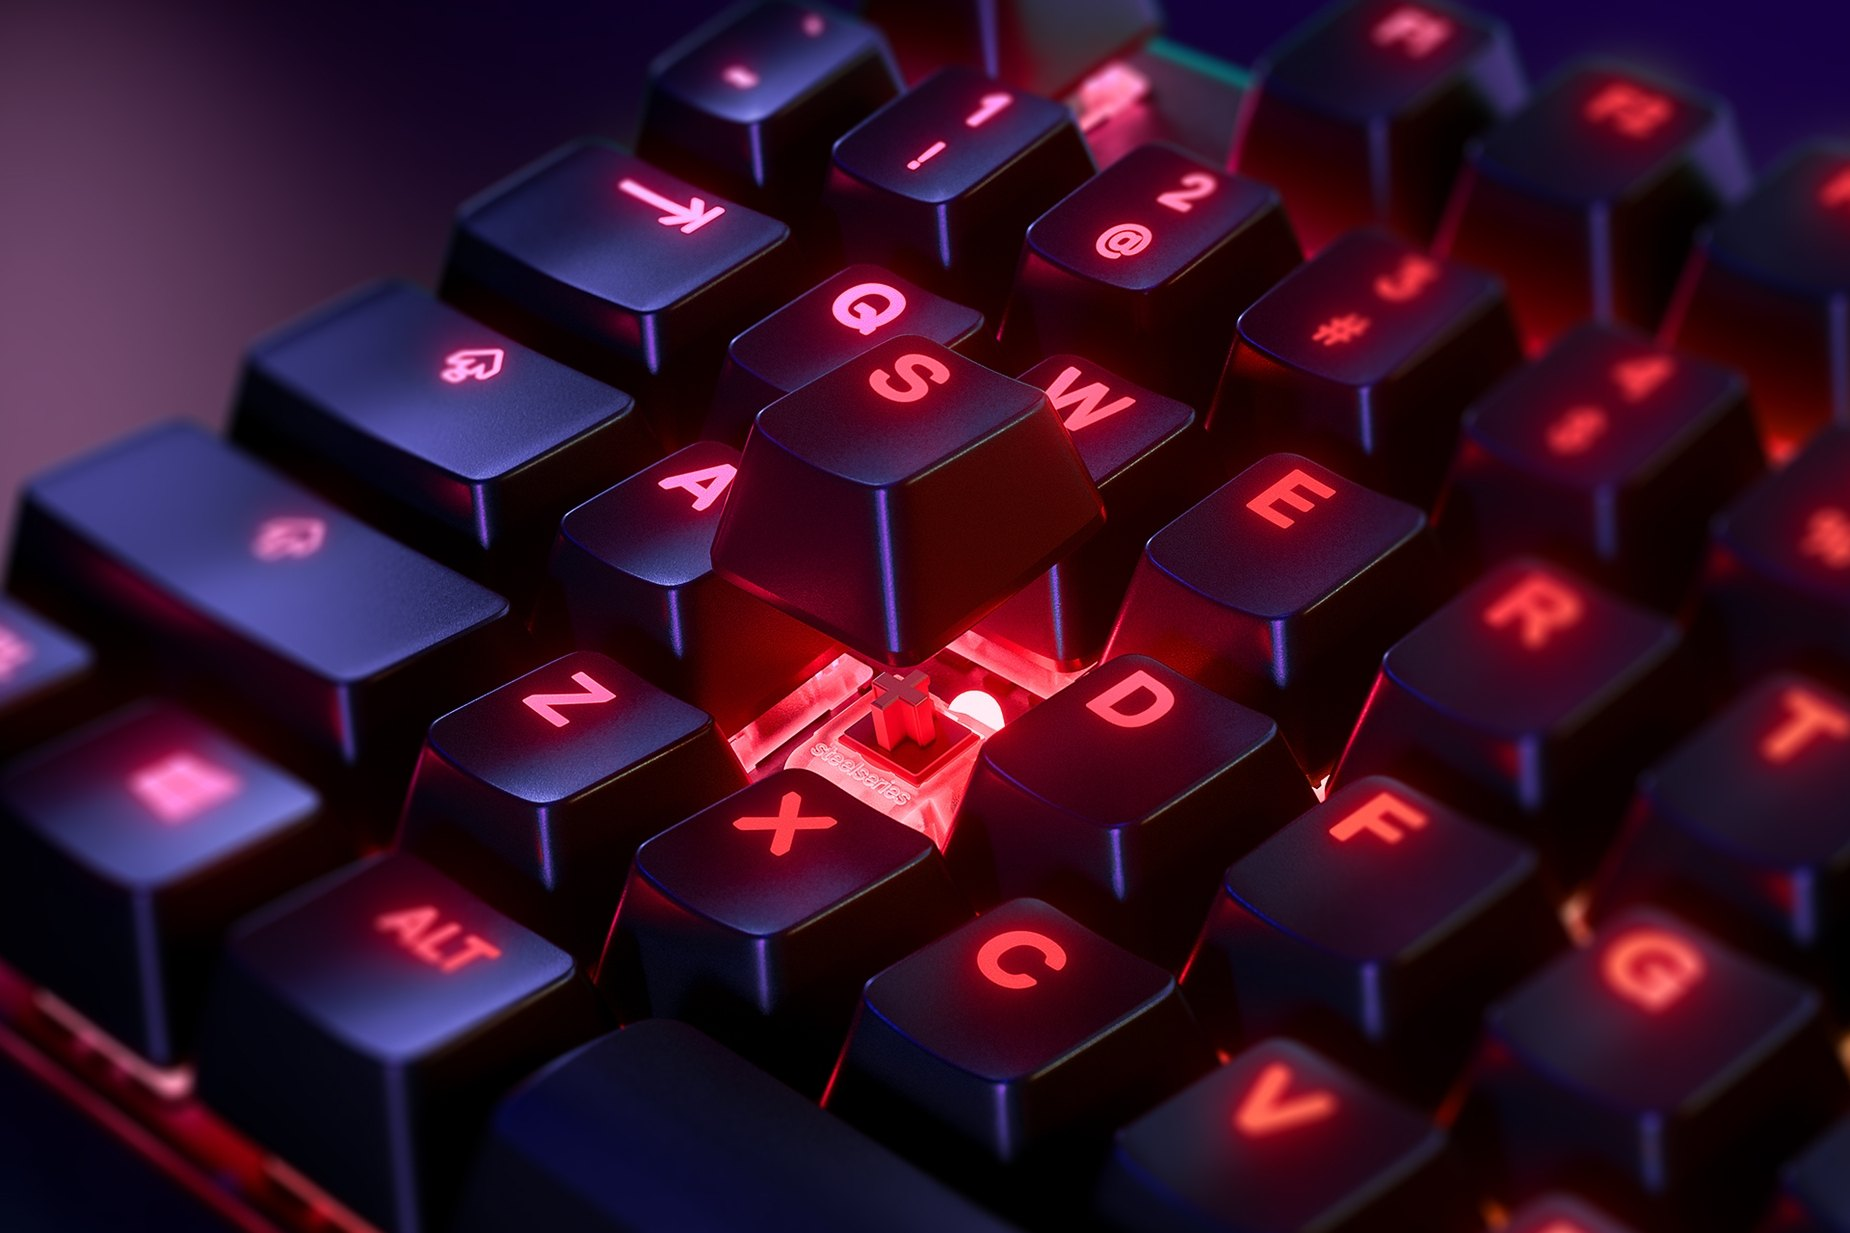 Zoomed in view of a single key on the Korean-Apex 7 TKL (Red Switch) gaming keyboard, the key is raised up to show the SteelSeries QX2 Mechanical RGB Switch underneath